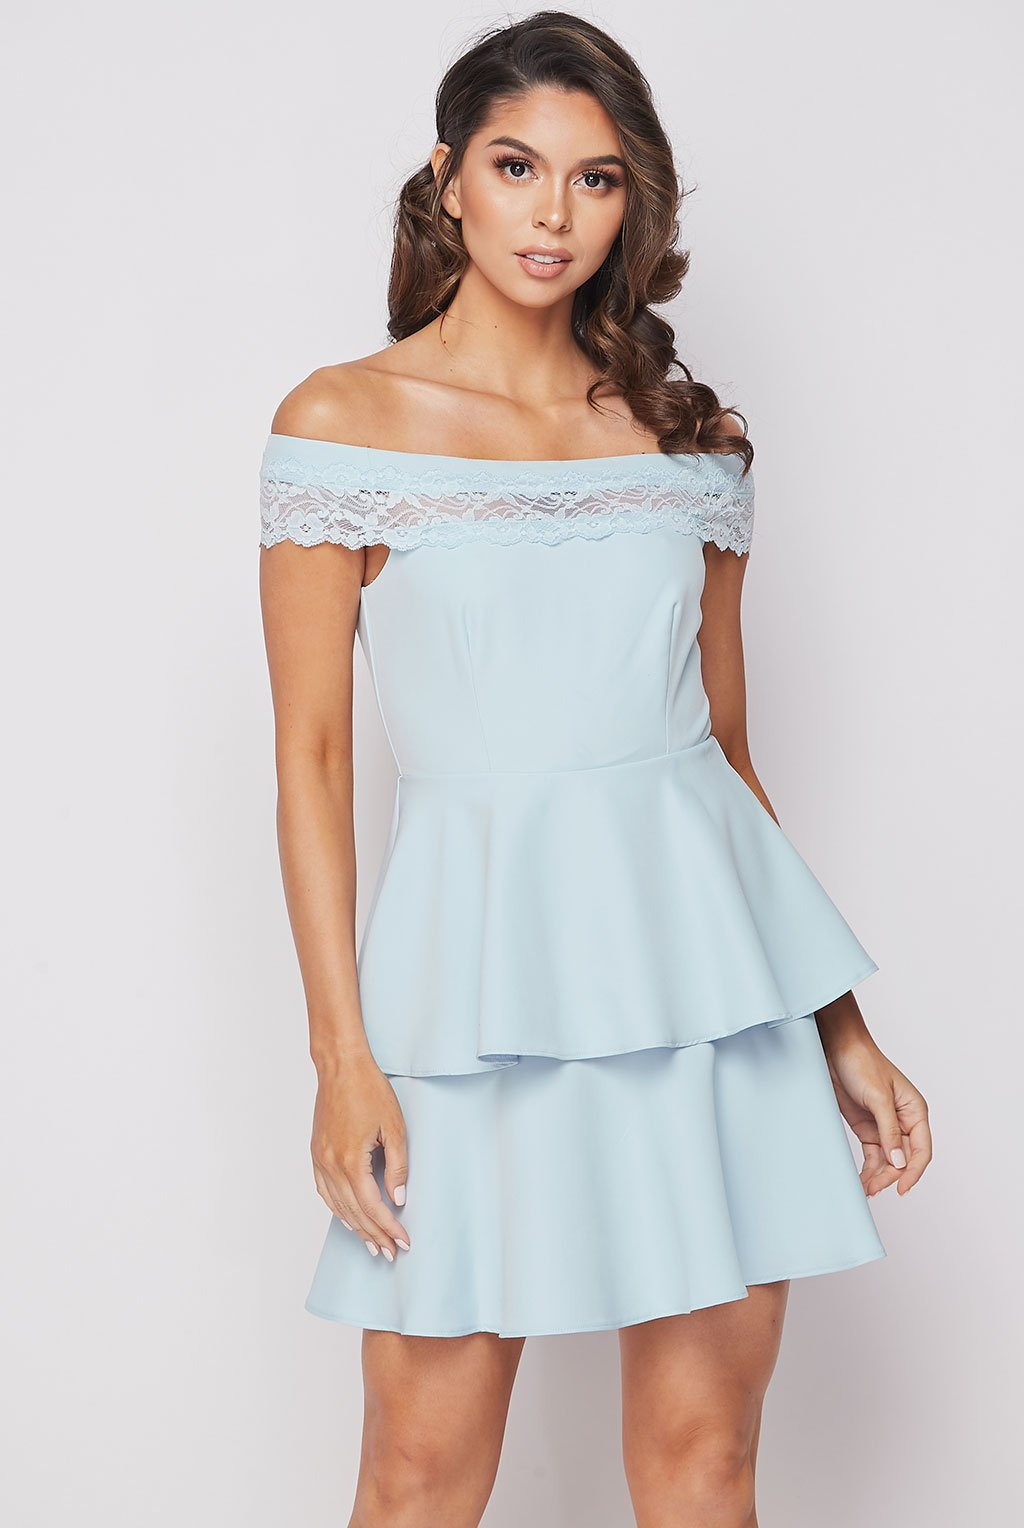 Teeze Me | Off Shoulder Lace Strap Tier Skirt Dress | Light Blue